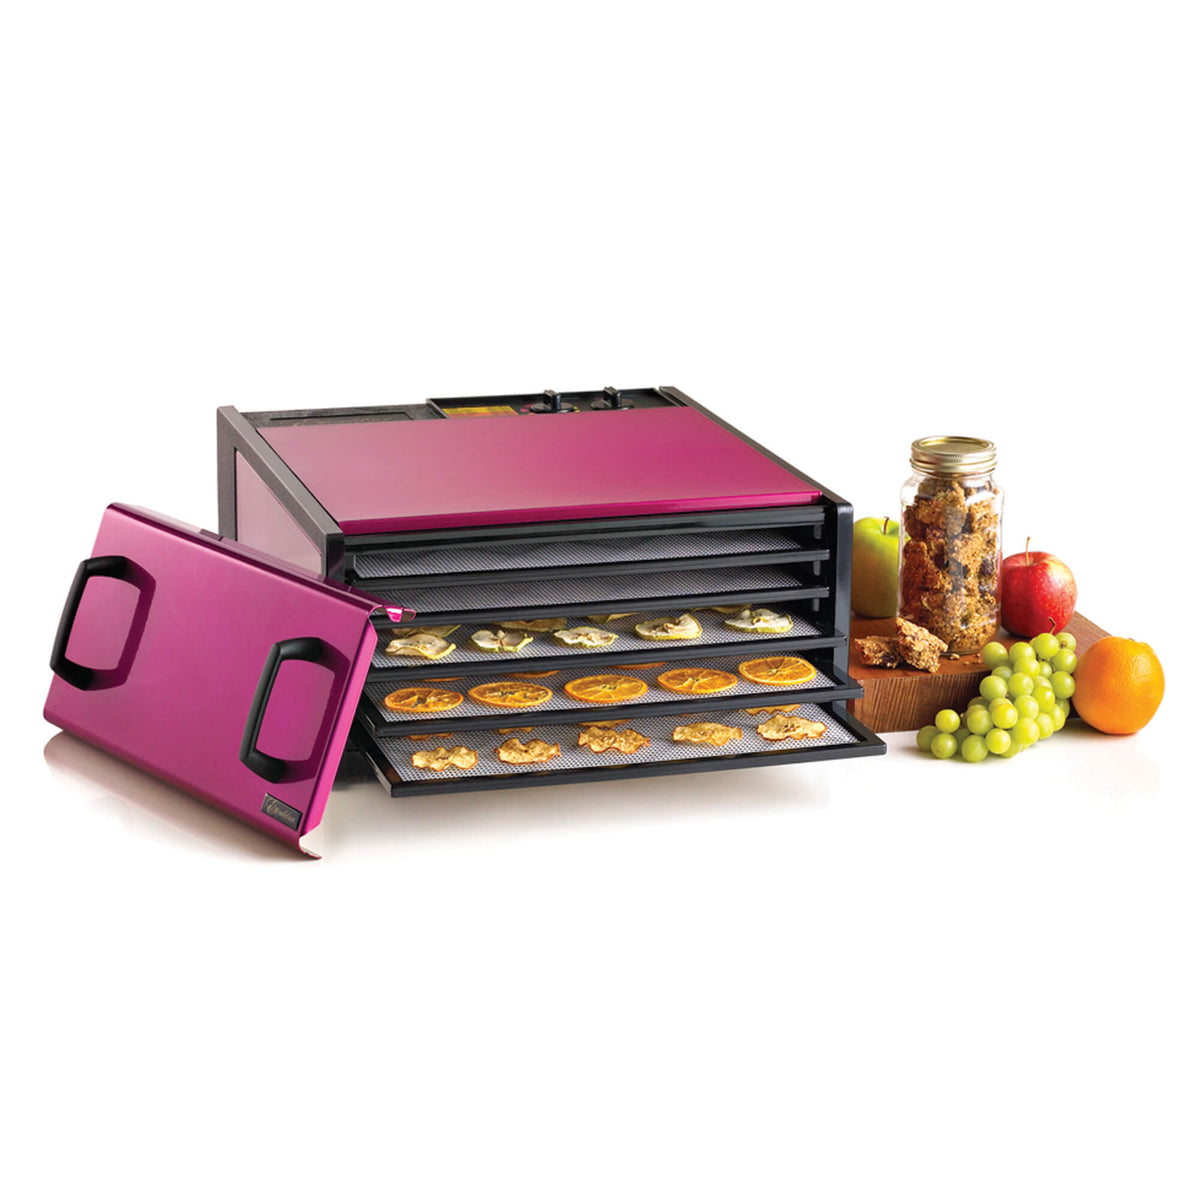 Excalibur D502RR Radiant Raspberry 5 tray stainless steel dehydrator with door propped to the side and food on the trays.